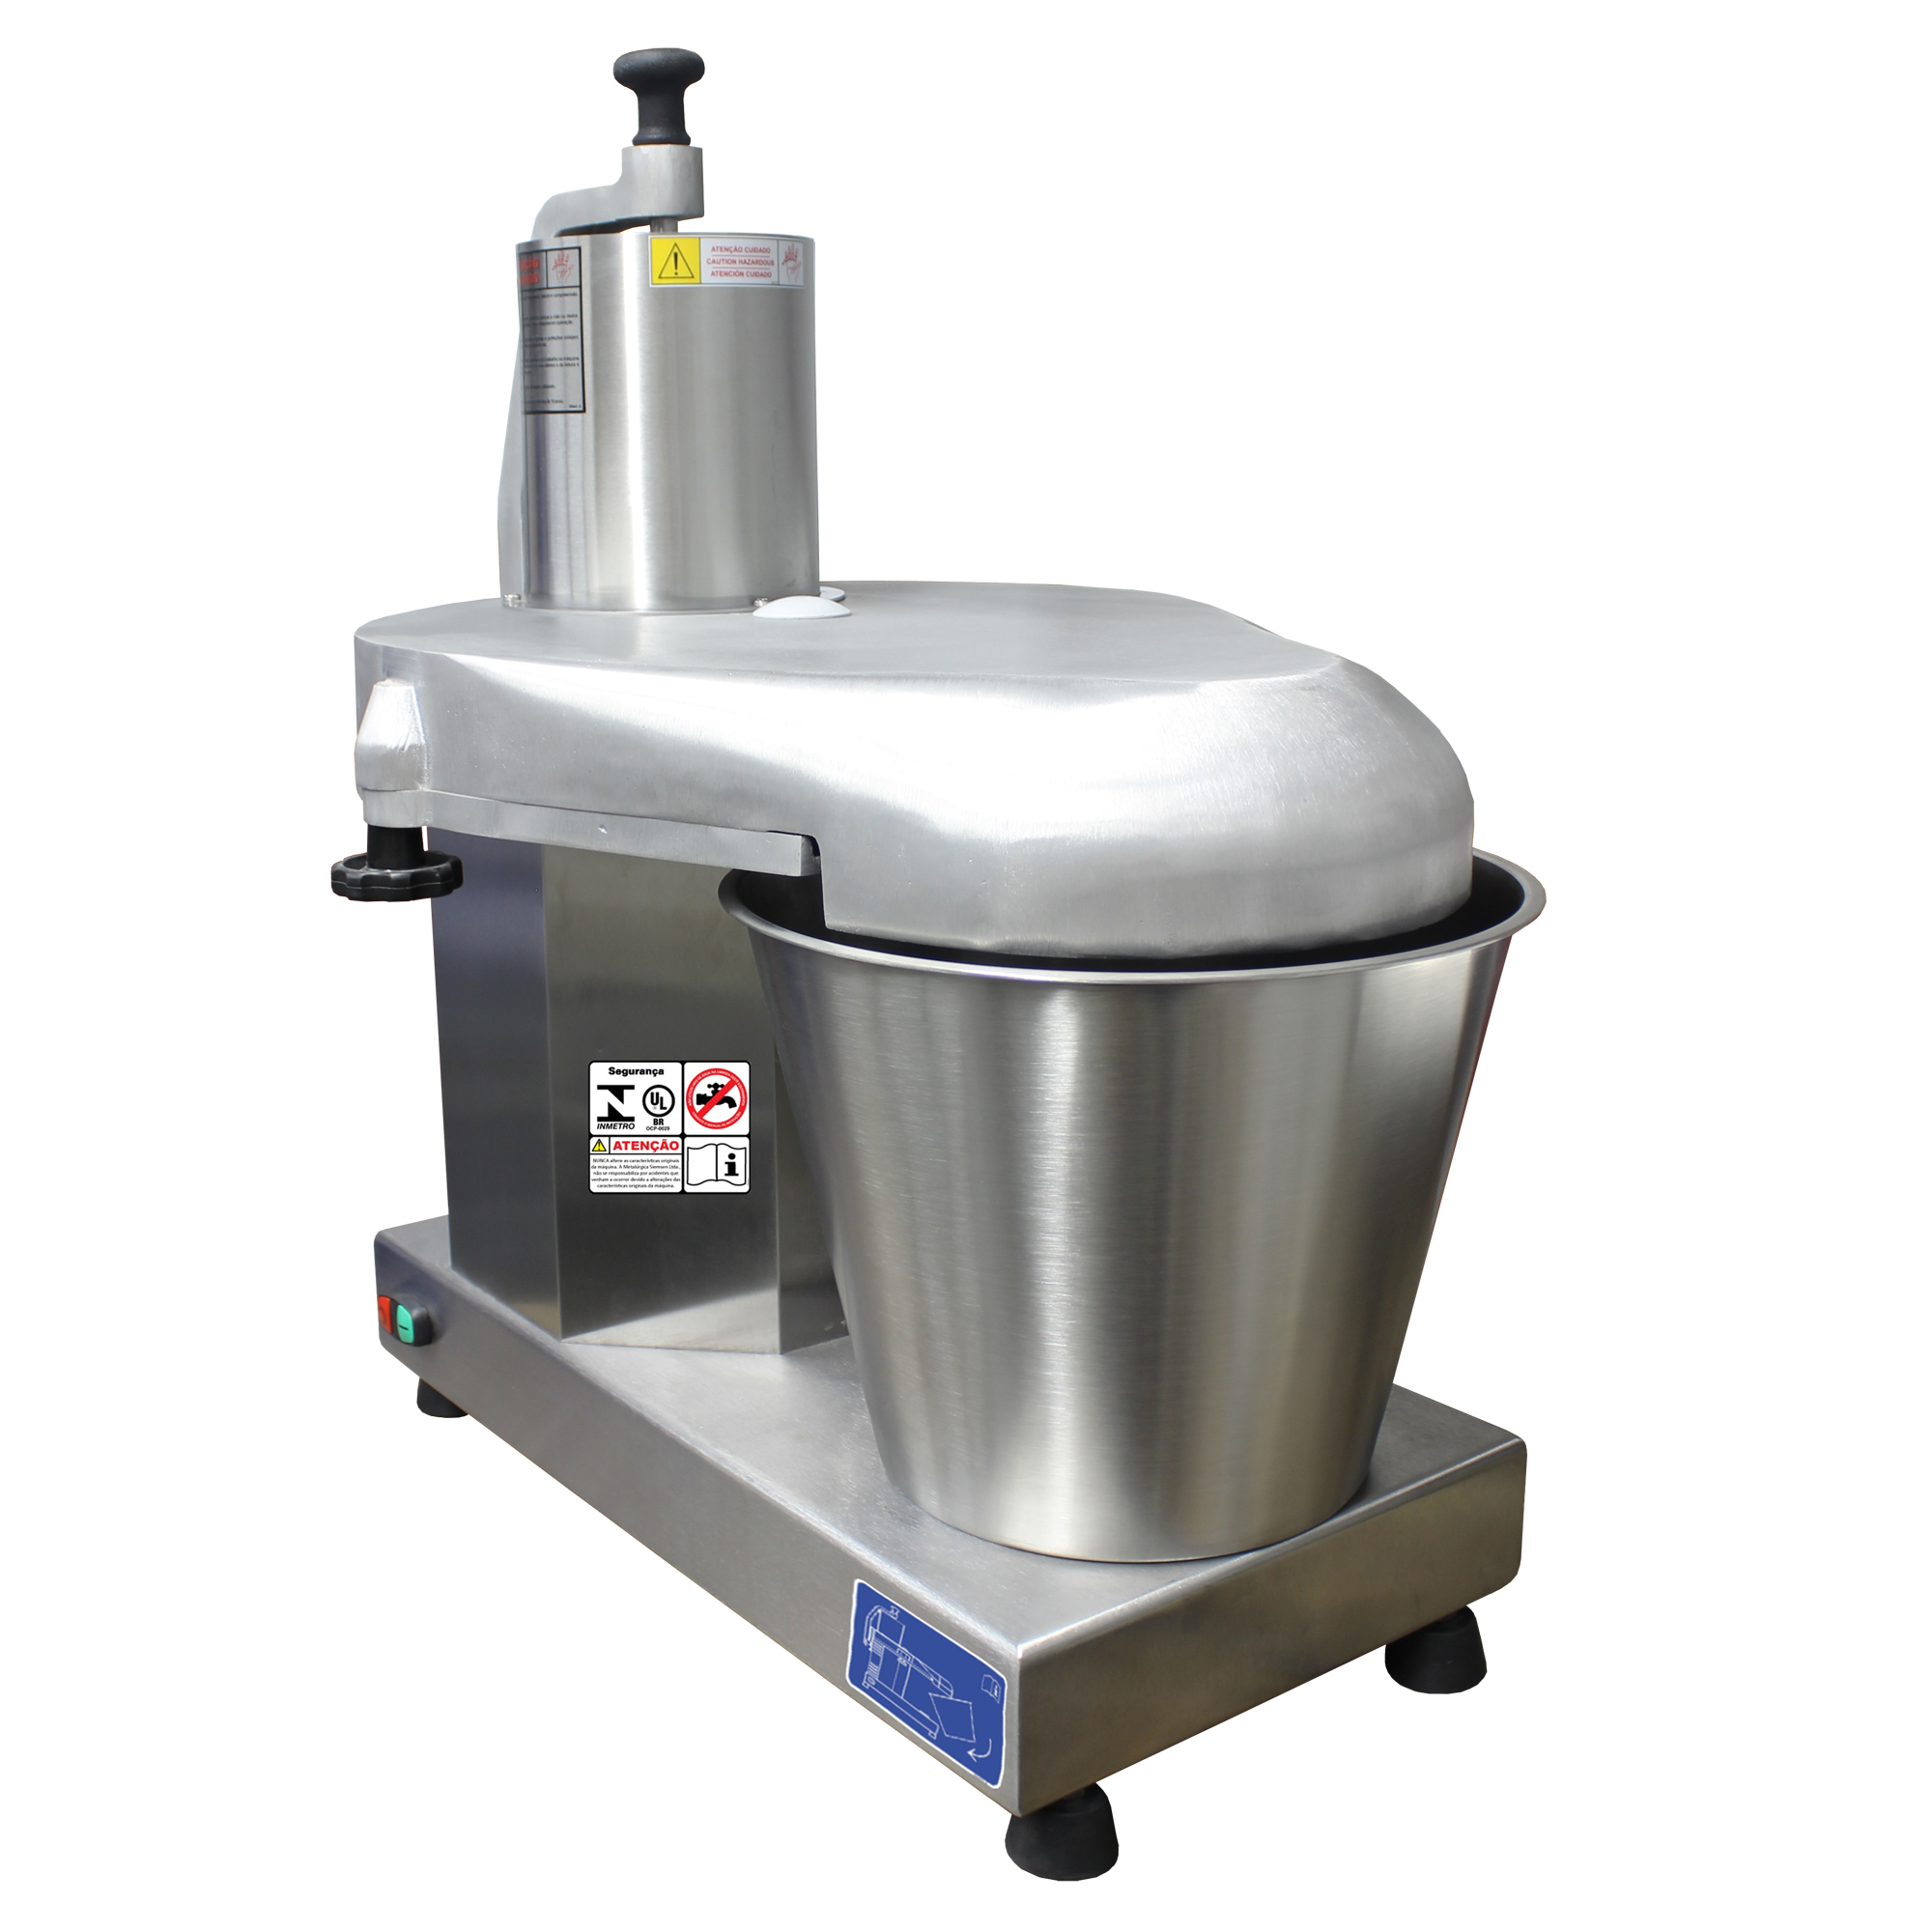 Omcan FP-BR-0014 food equipment > food processors > vegetable cutters